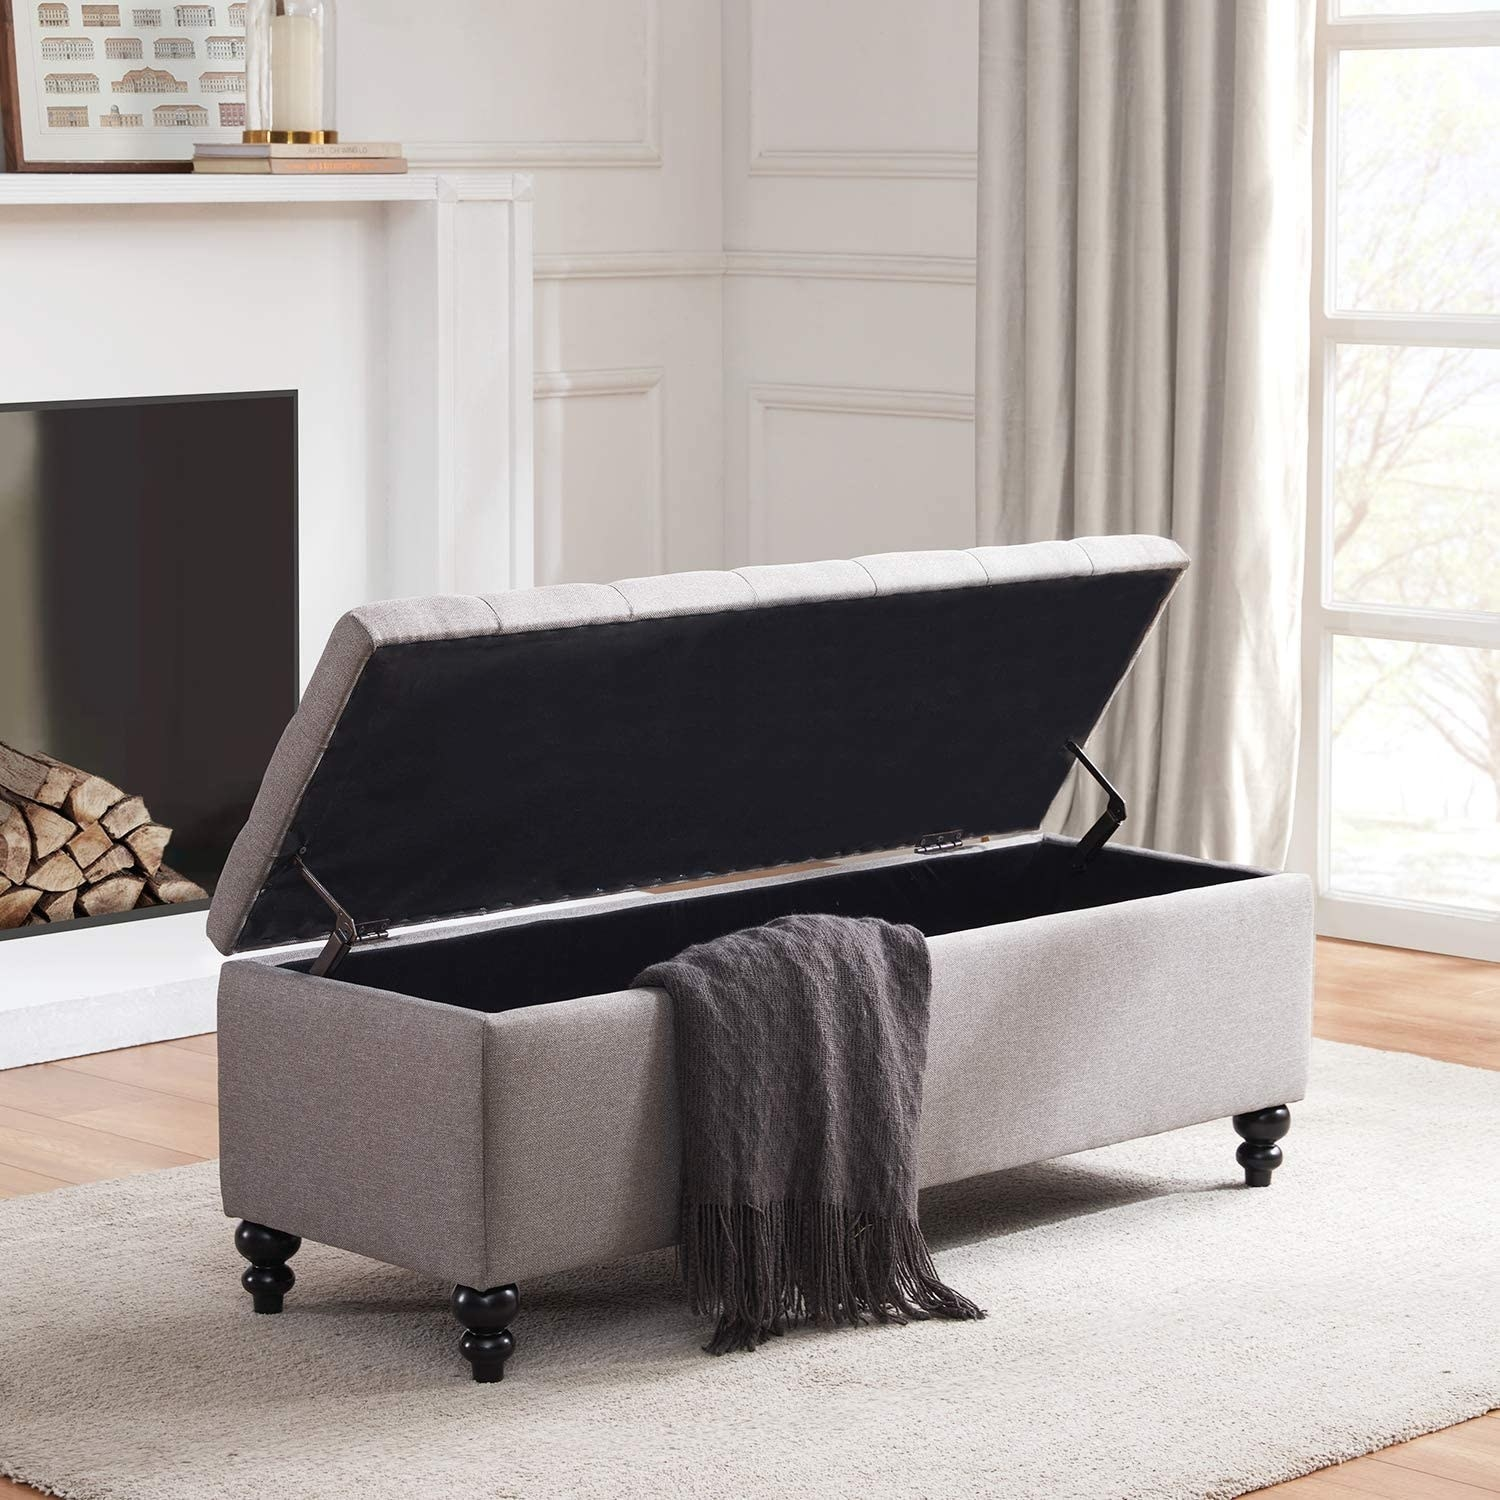 long rectangle light gray open ottoman open with a blanket in it